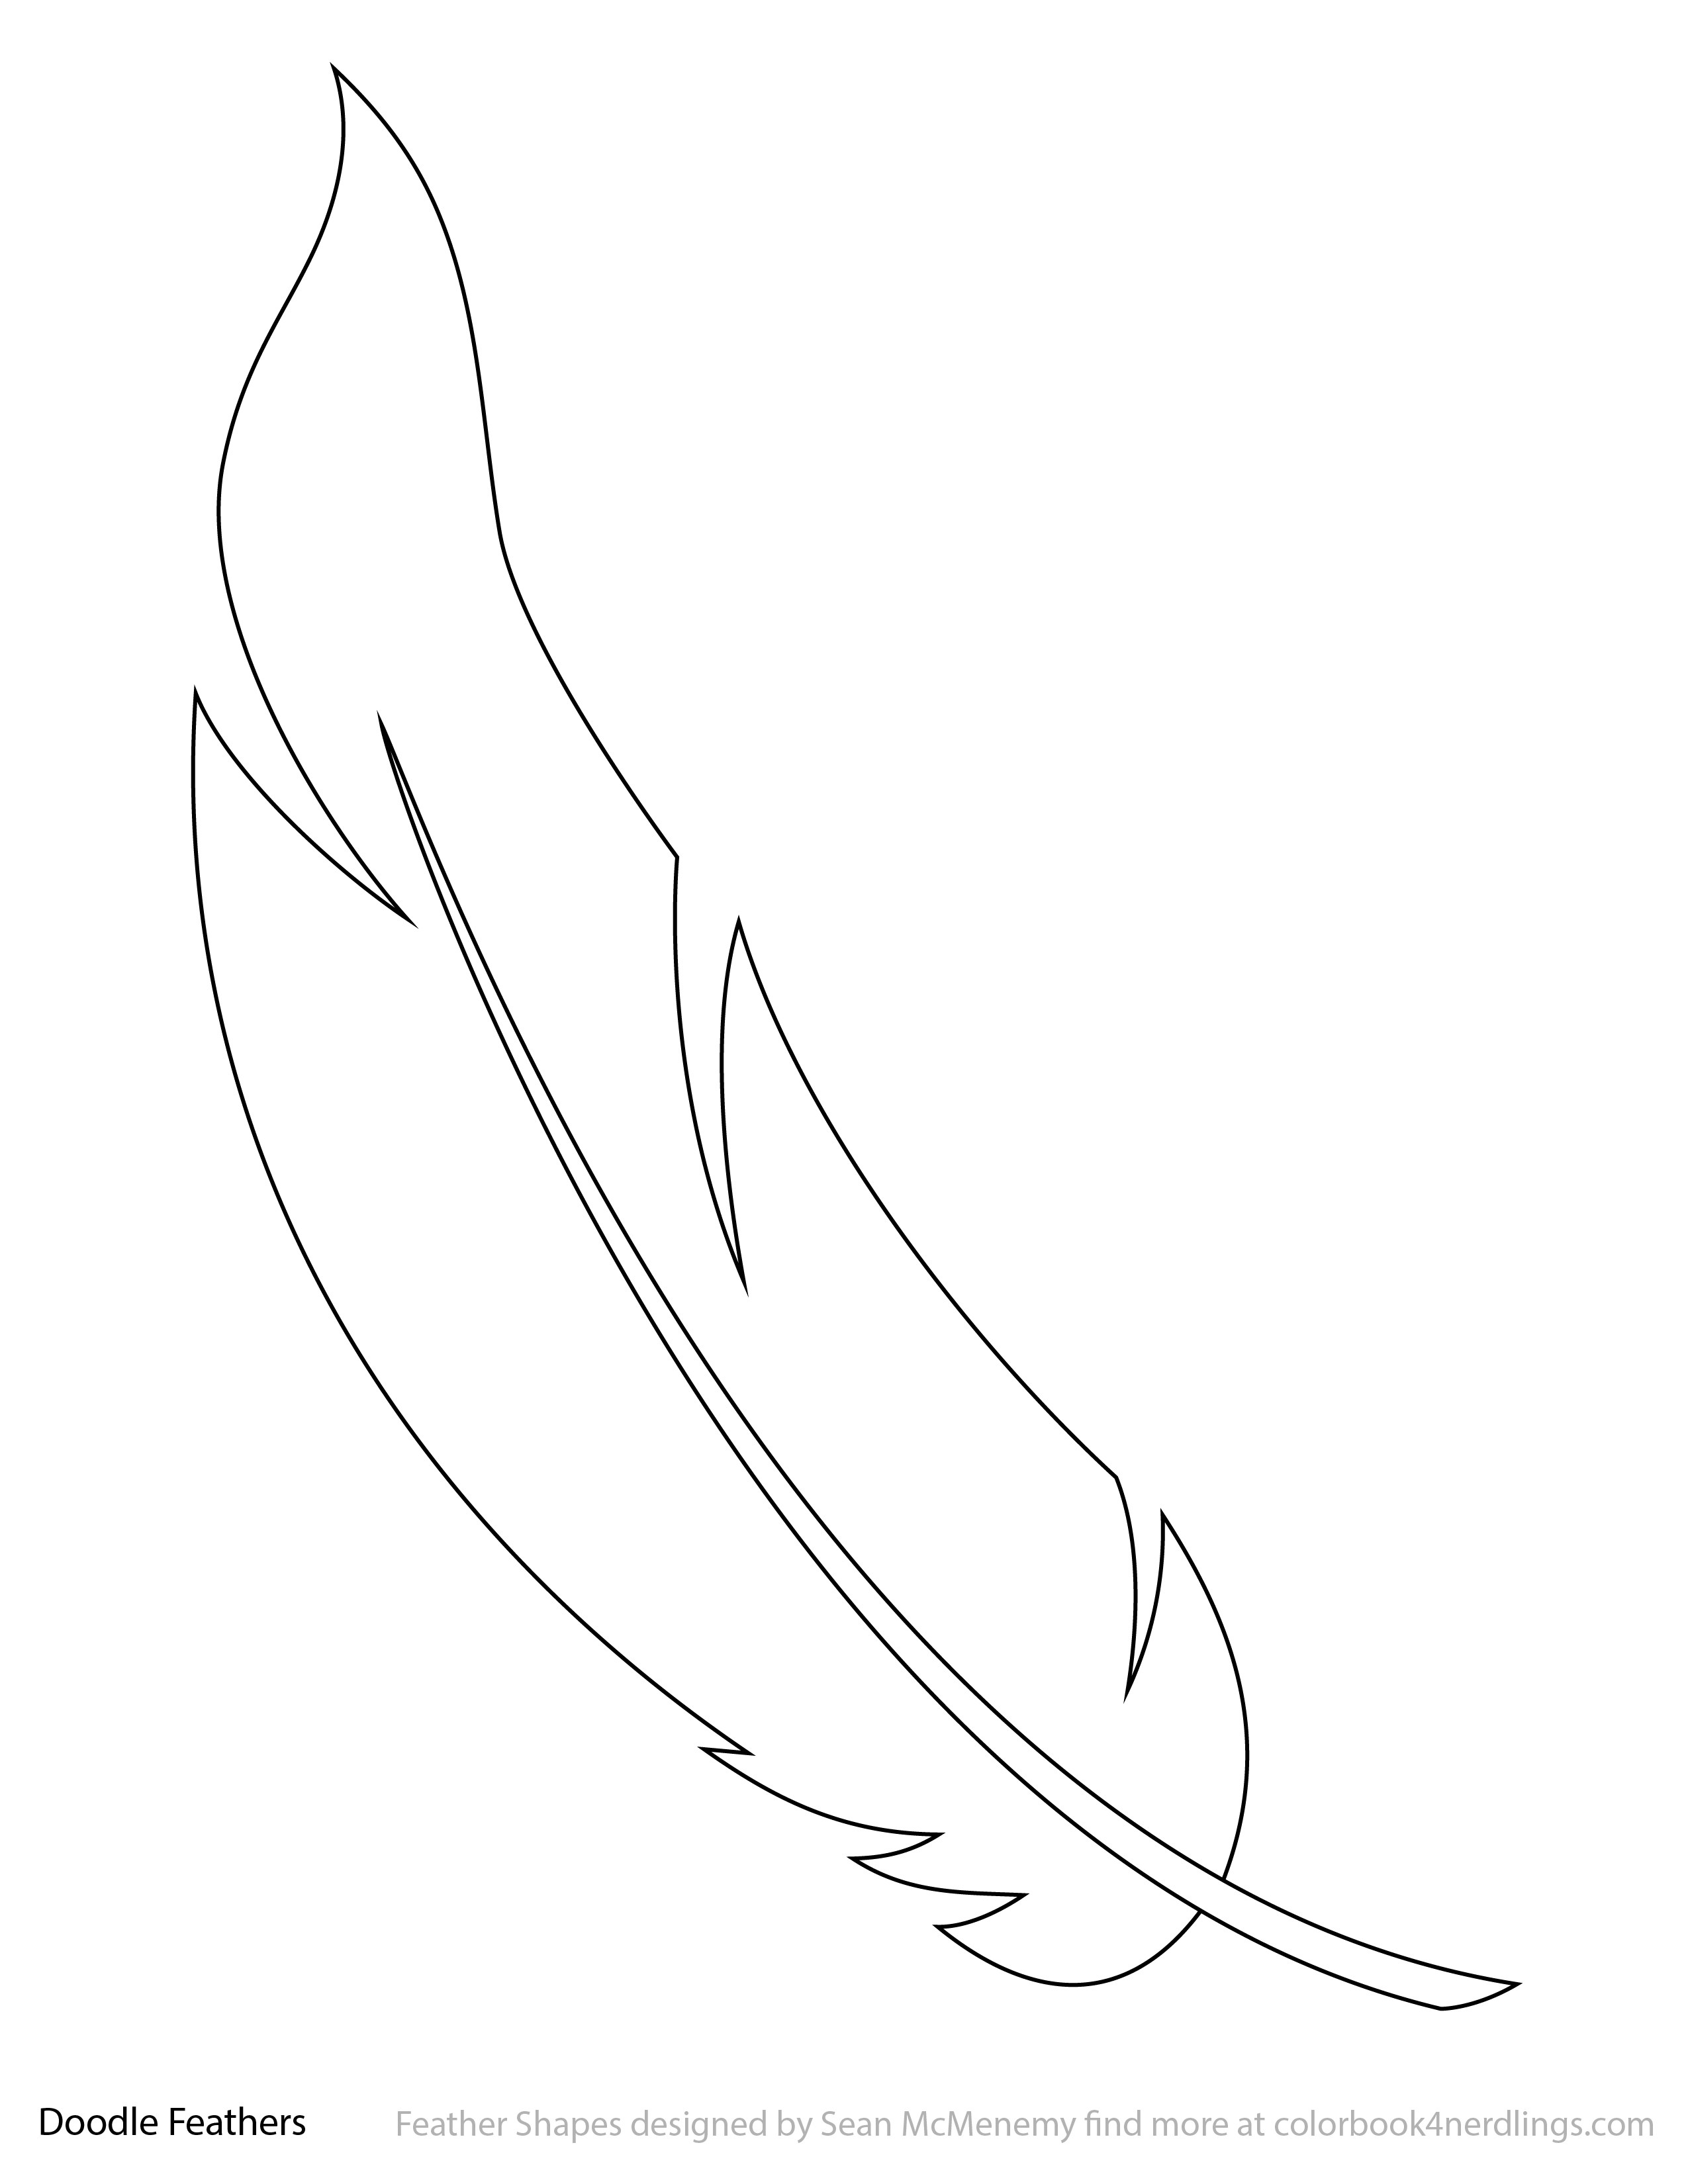 2550x3300 Use These Doodle Feathers As A Starter Drawing! Colorbook 4